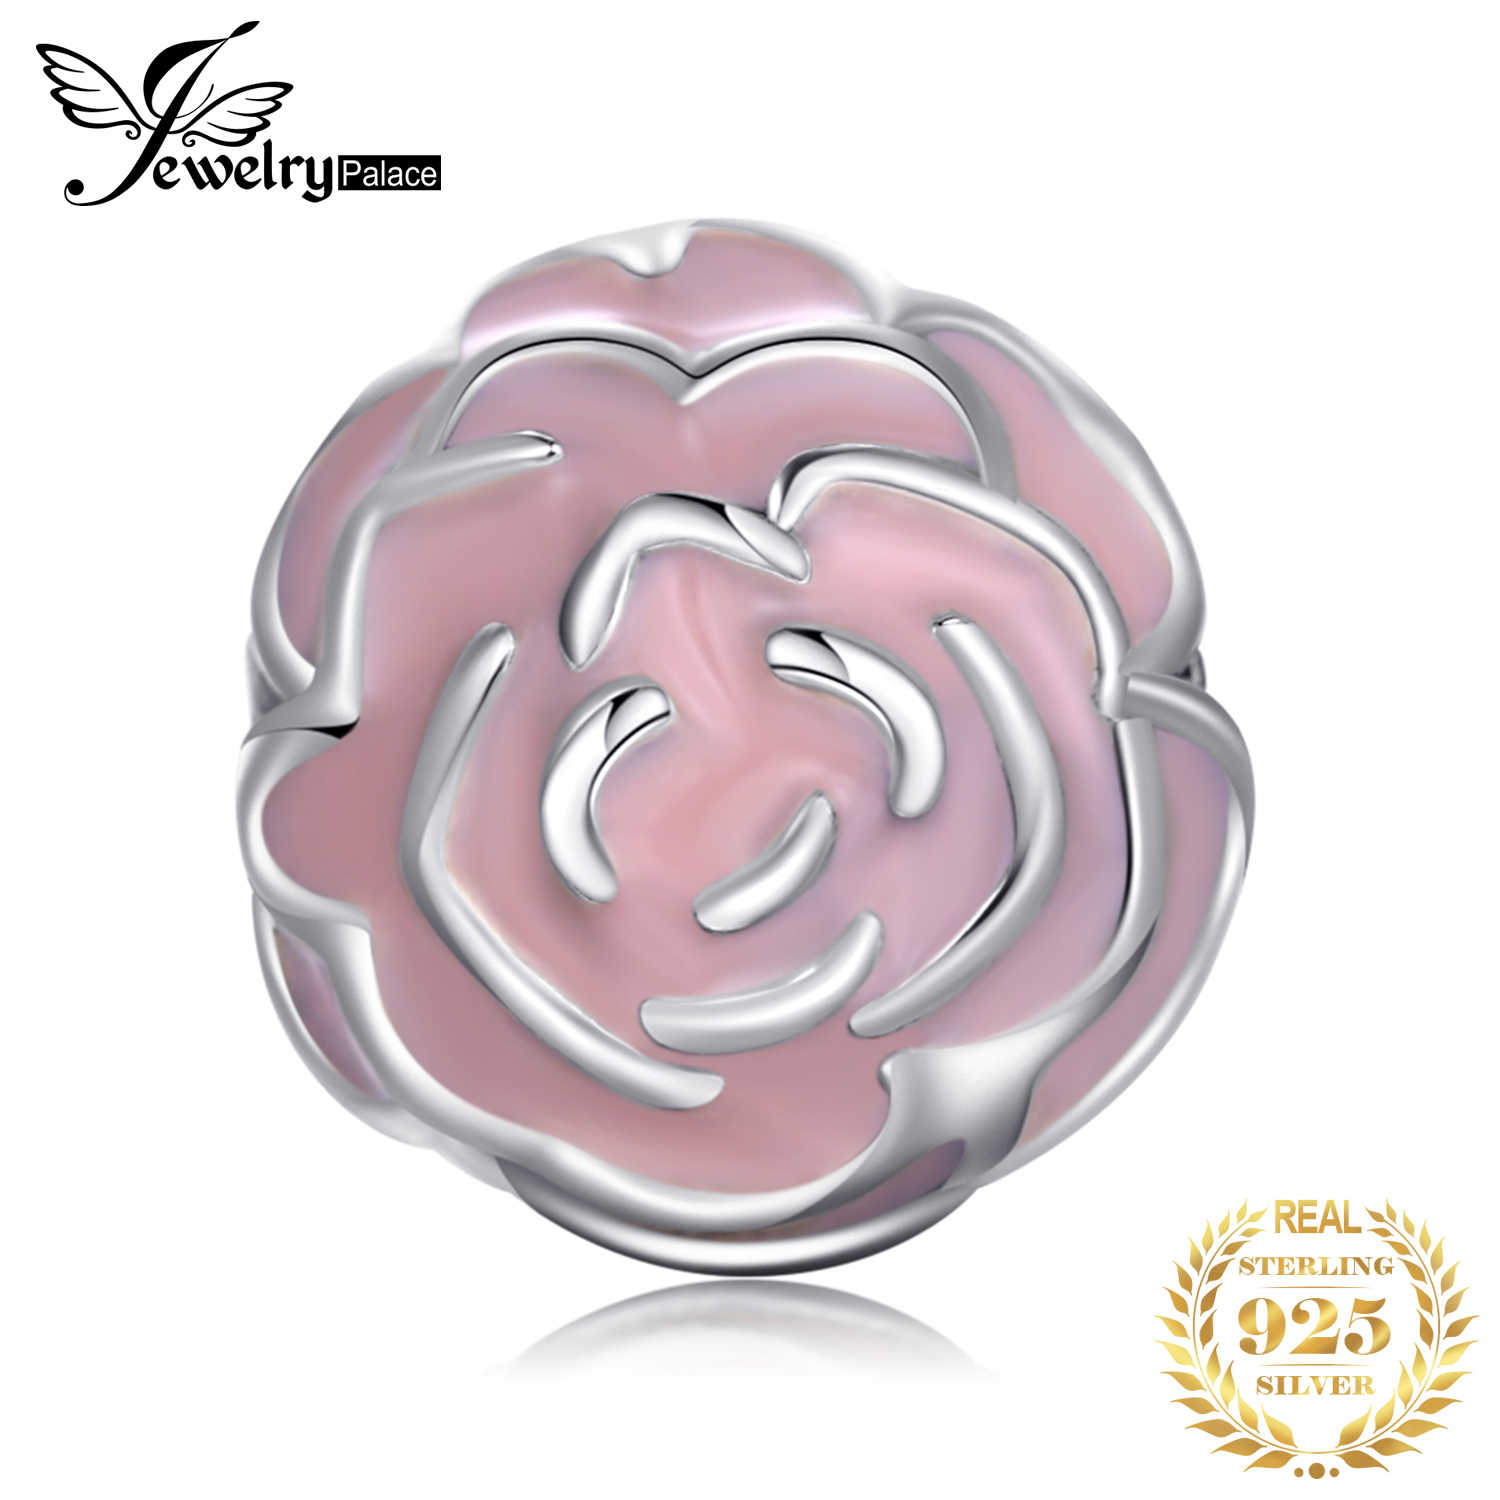 Jewelrypalace 925 Sterling Silver Early Puberty Flowers Pink Enamel Beads Charms Fit Bracelets Gifts For Women Fashion Jewelry